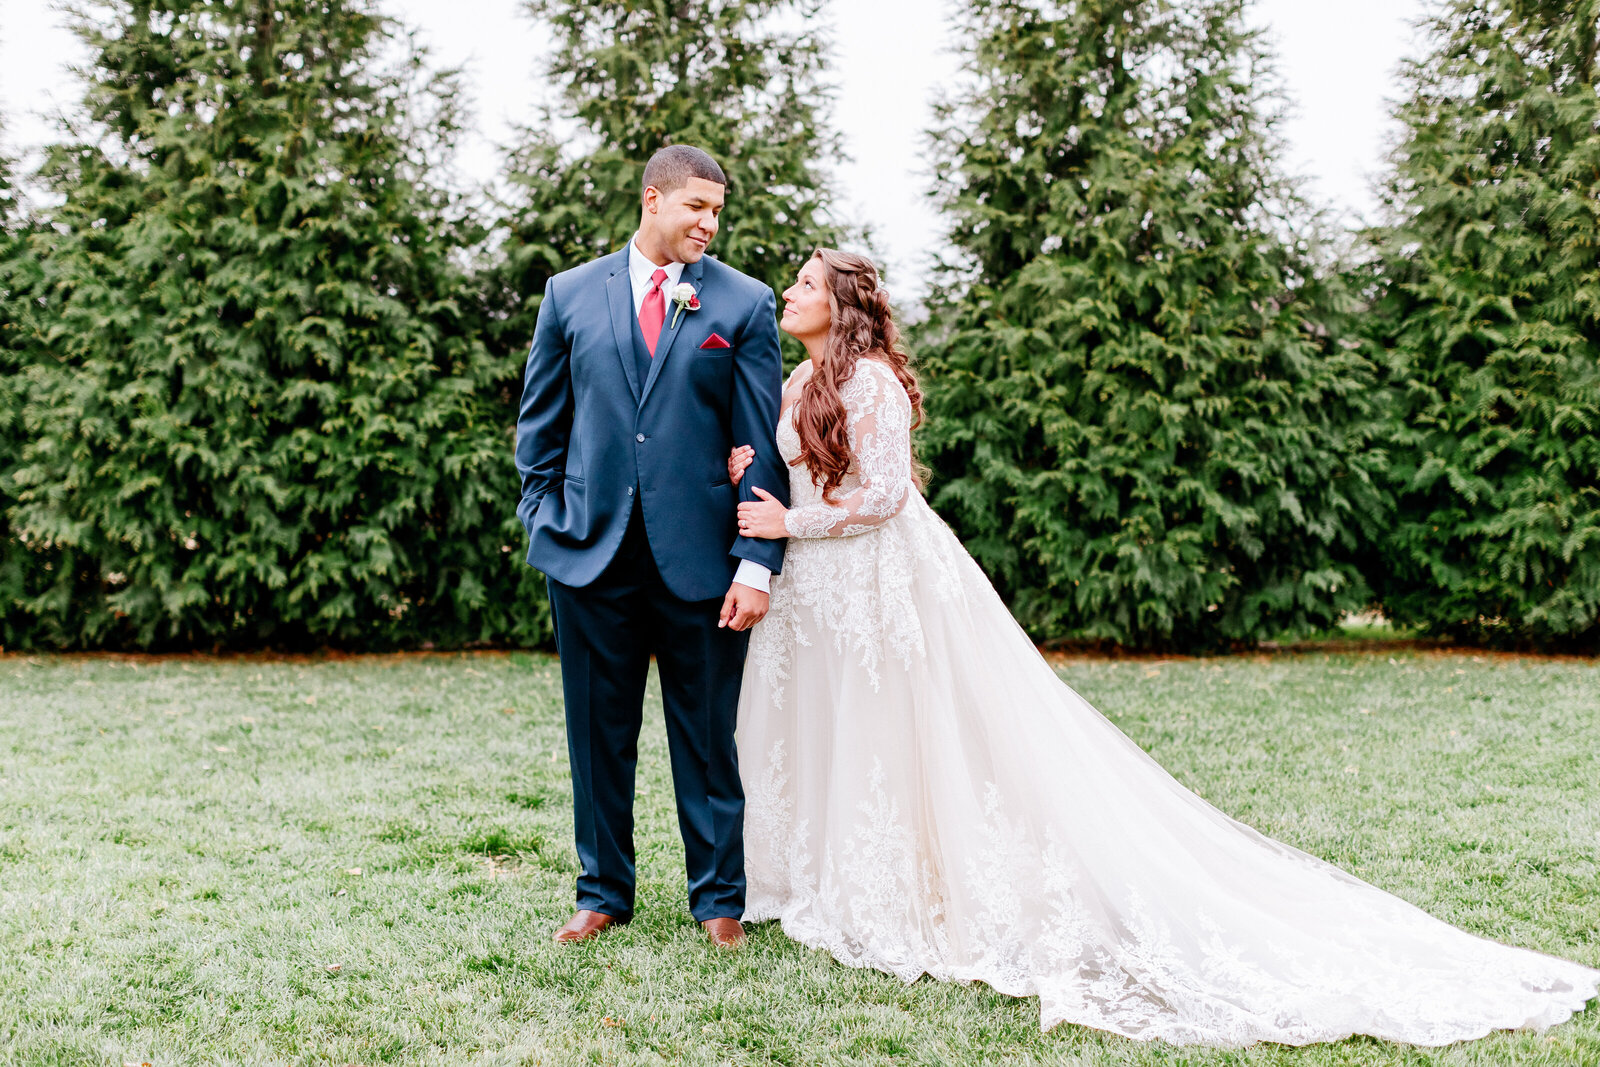 danielleryanmarried2019-310